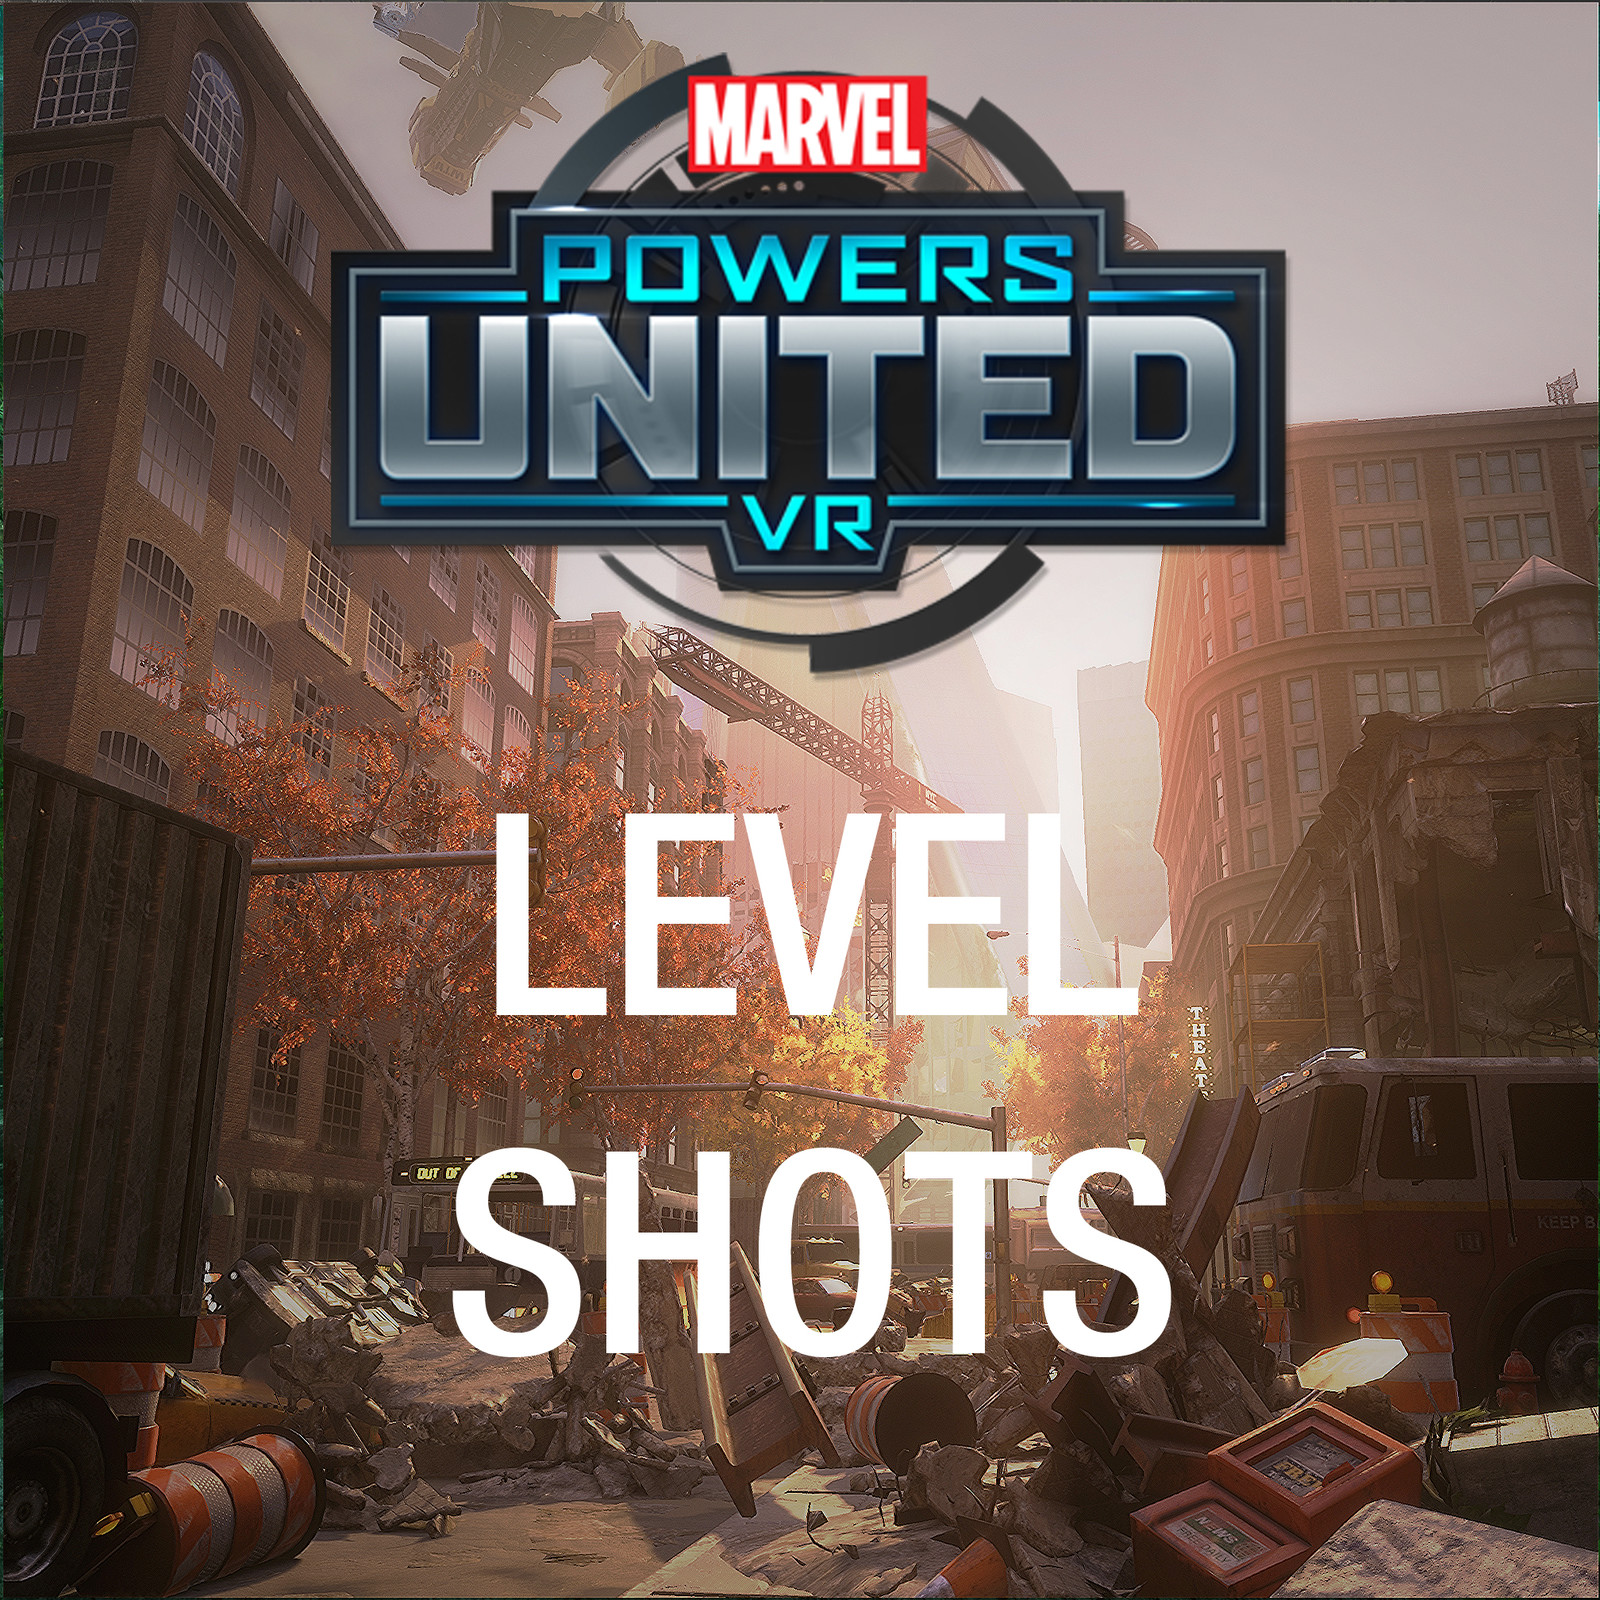 Marvel: Powers United VR - Level Shots